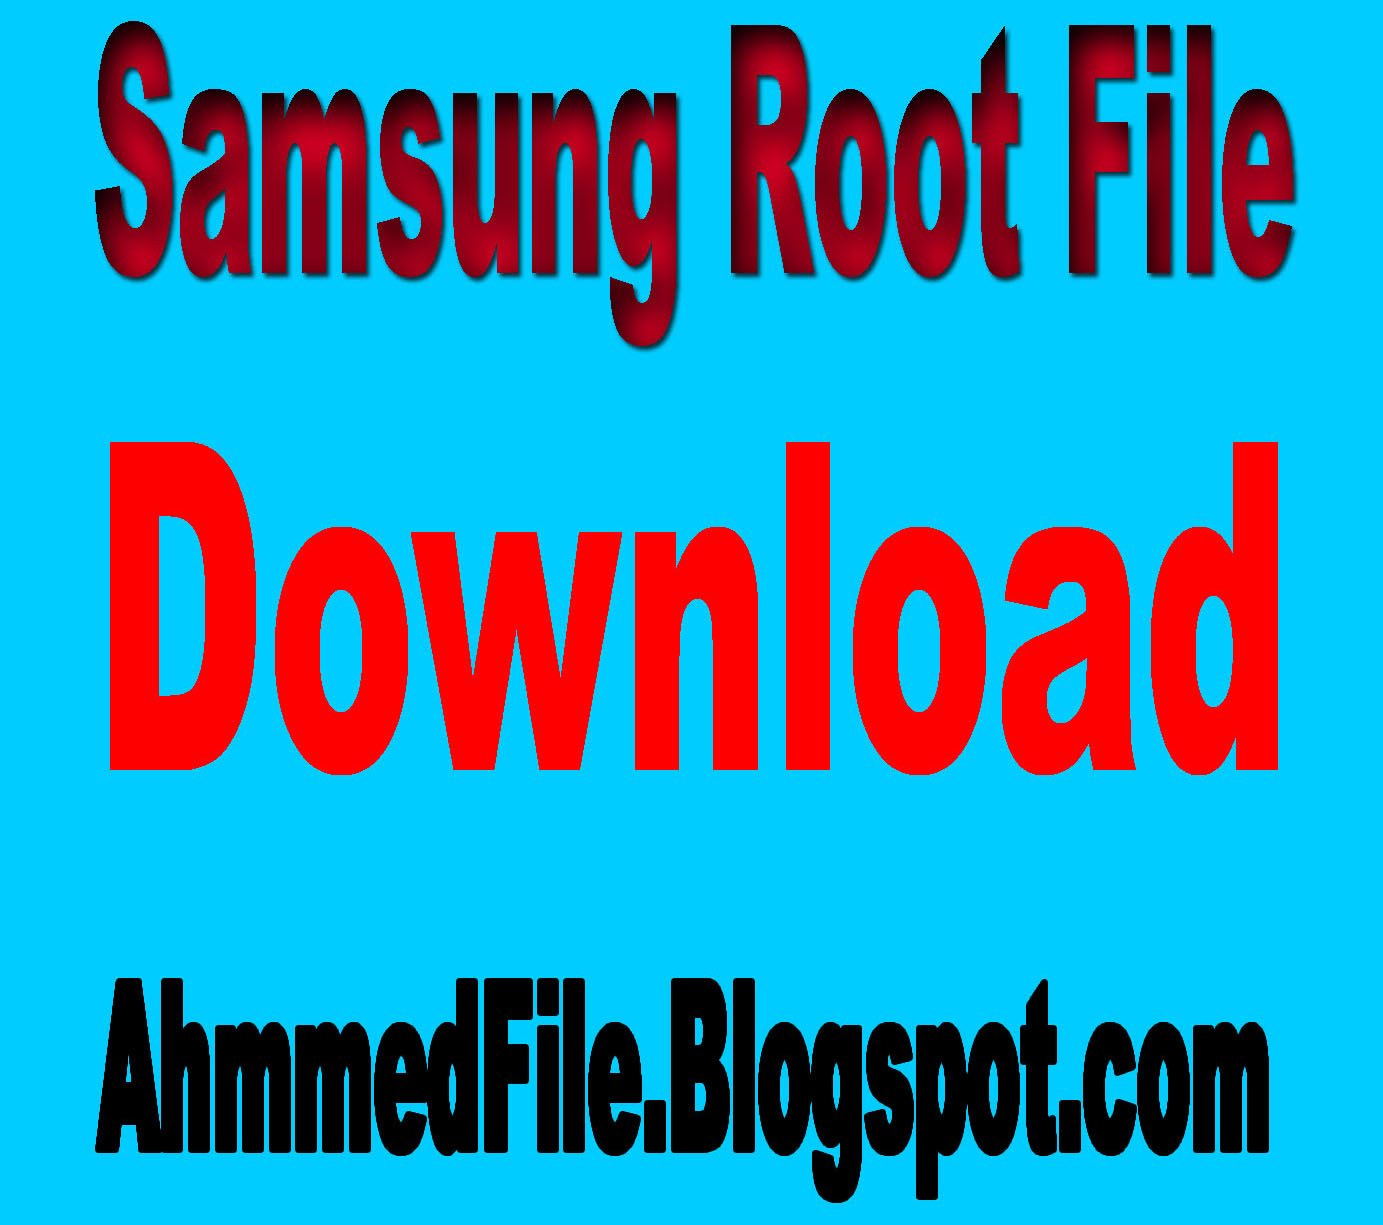 Samsung Note 4 SM-N910C 6 0 1 Root File 100%Tested | AHMMED FILE